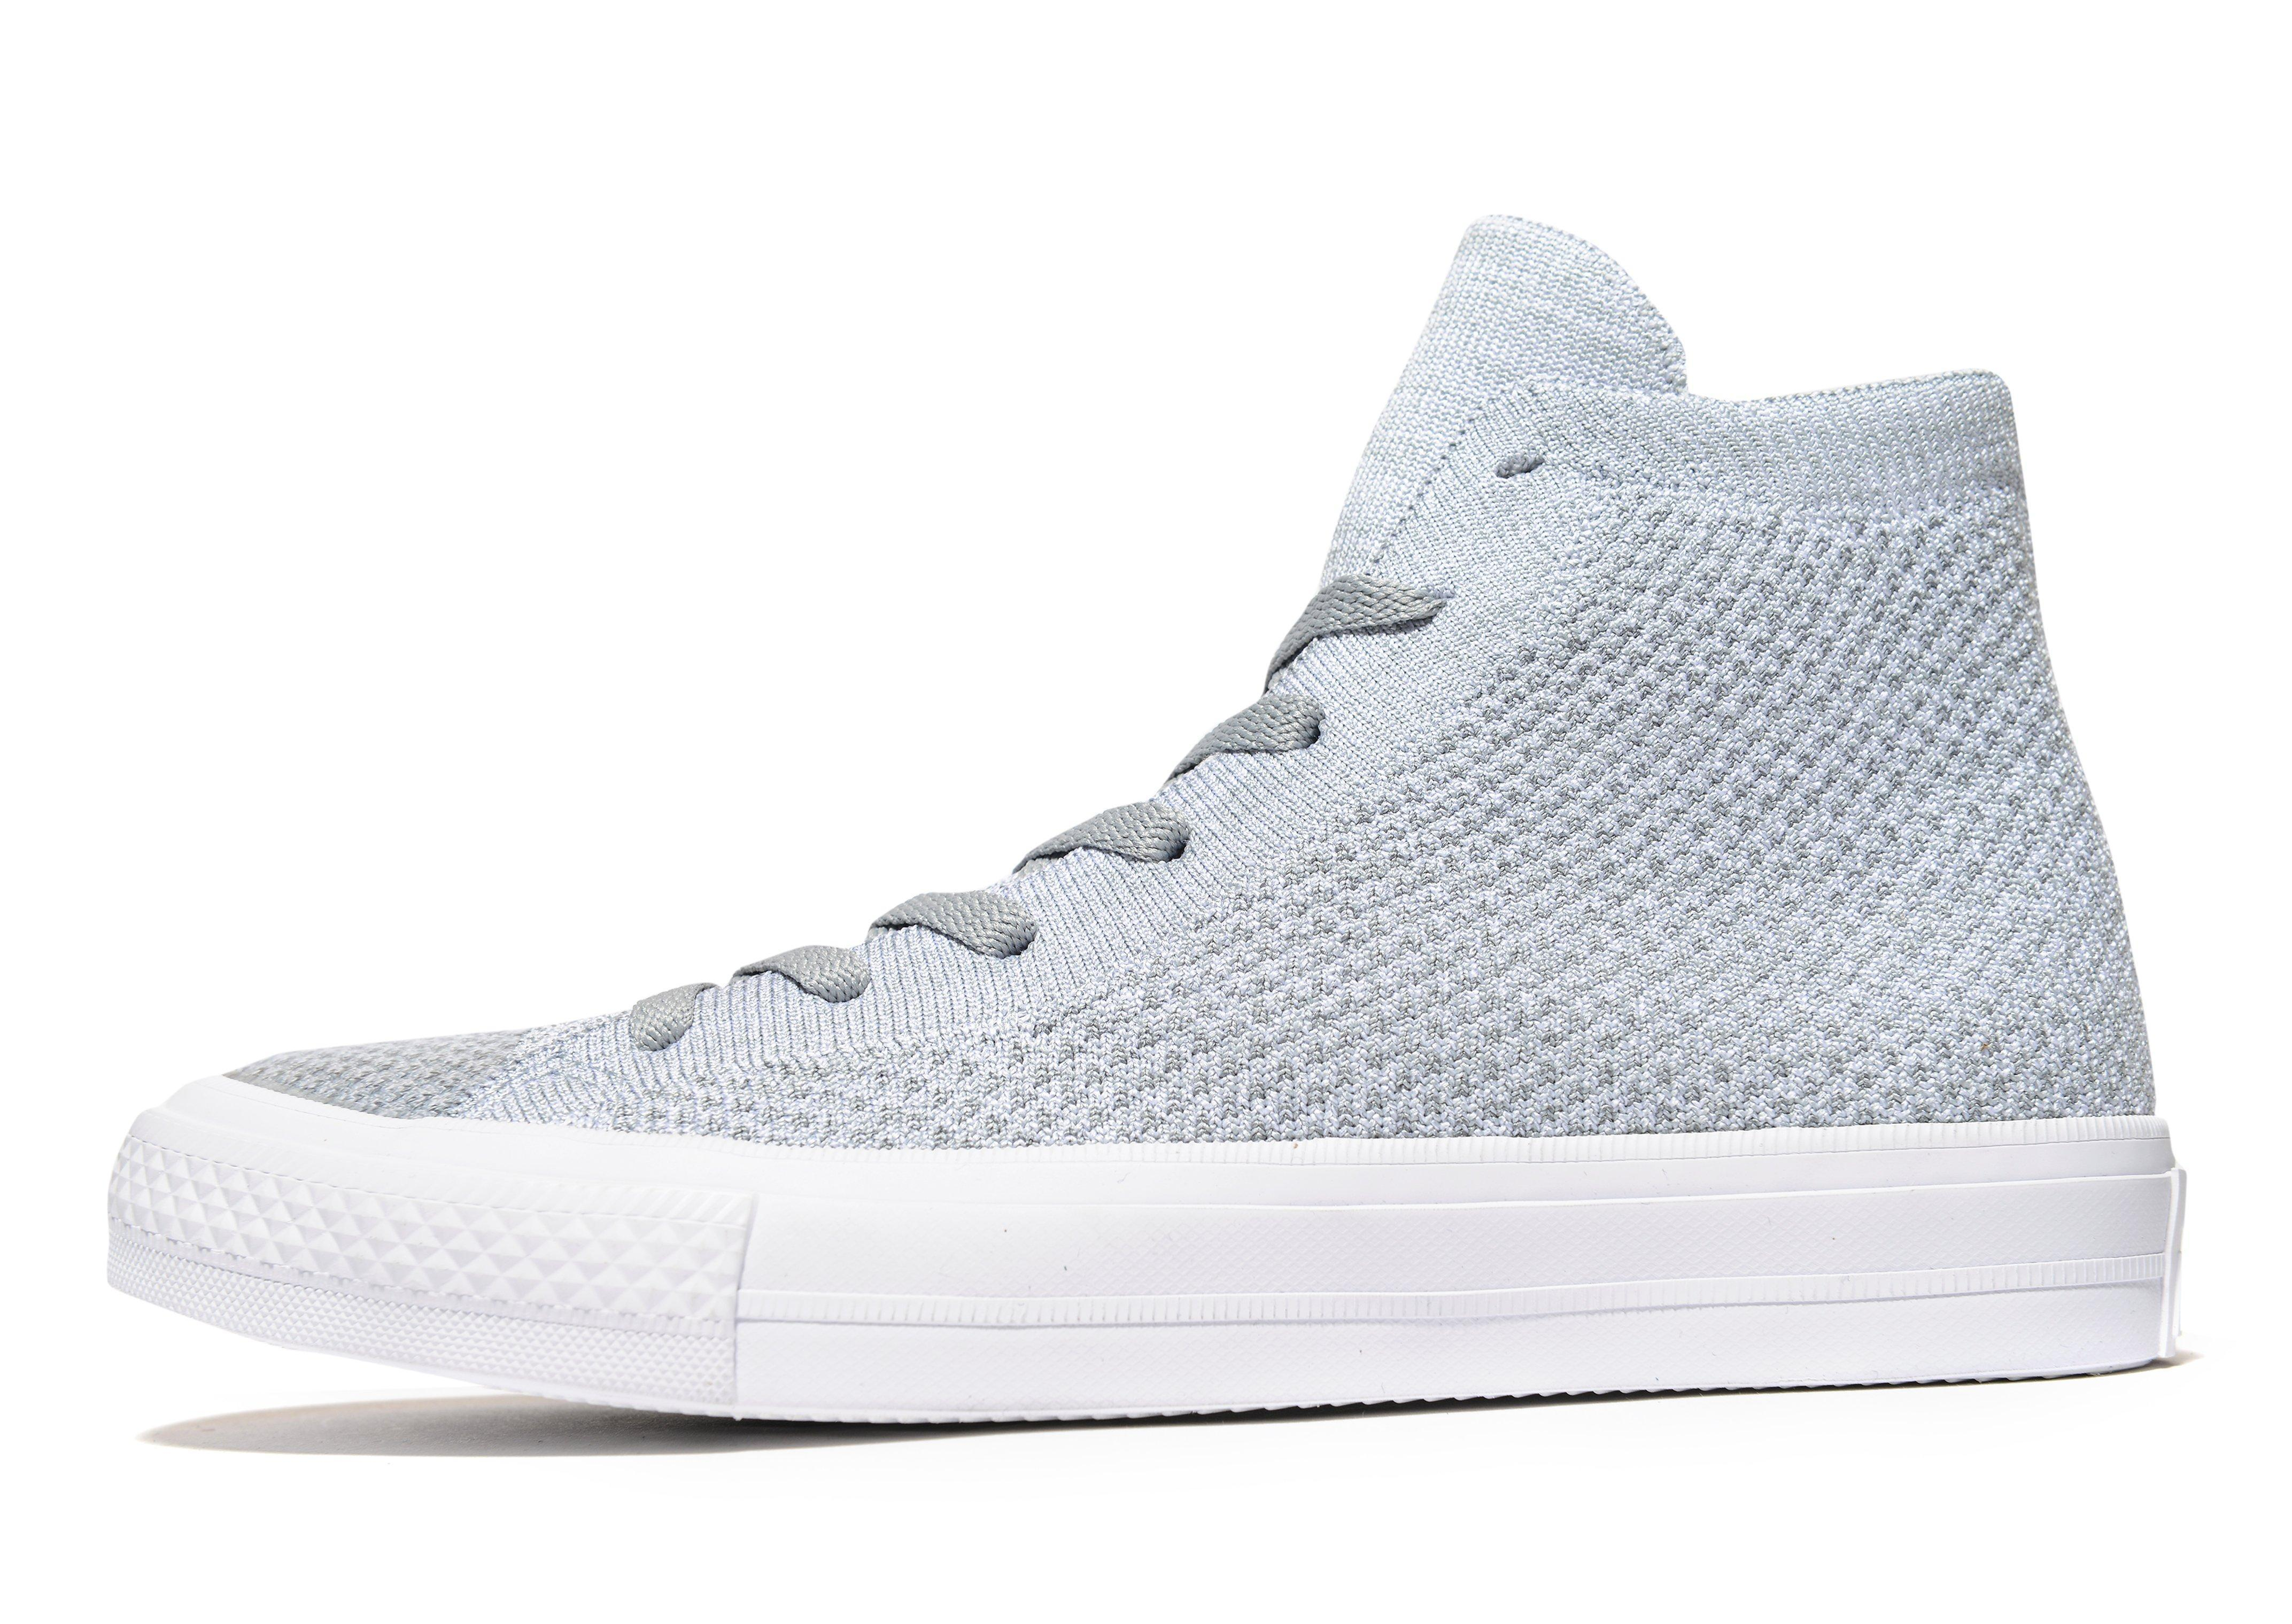 Lyst - Converse Chuck Taylor All Star Flyknit in Gray for Men 5beed22a4